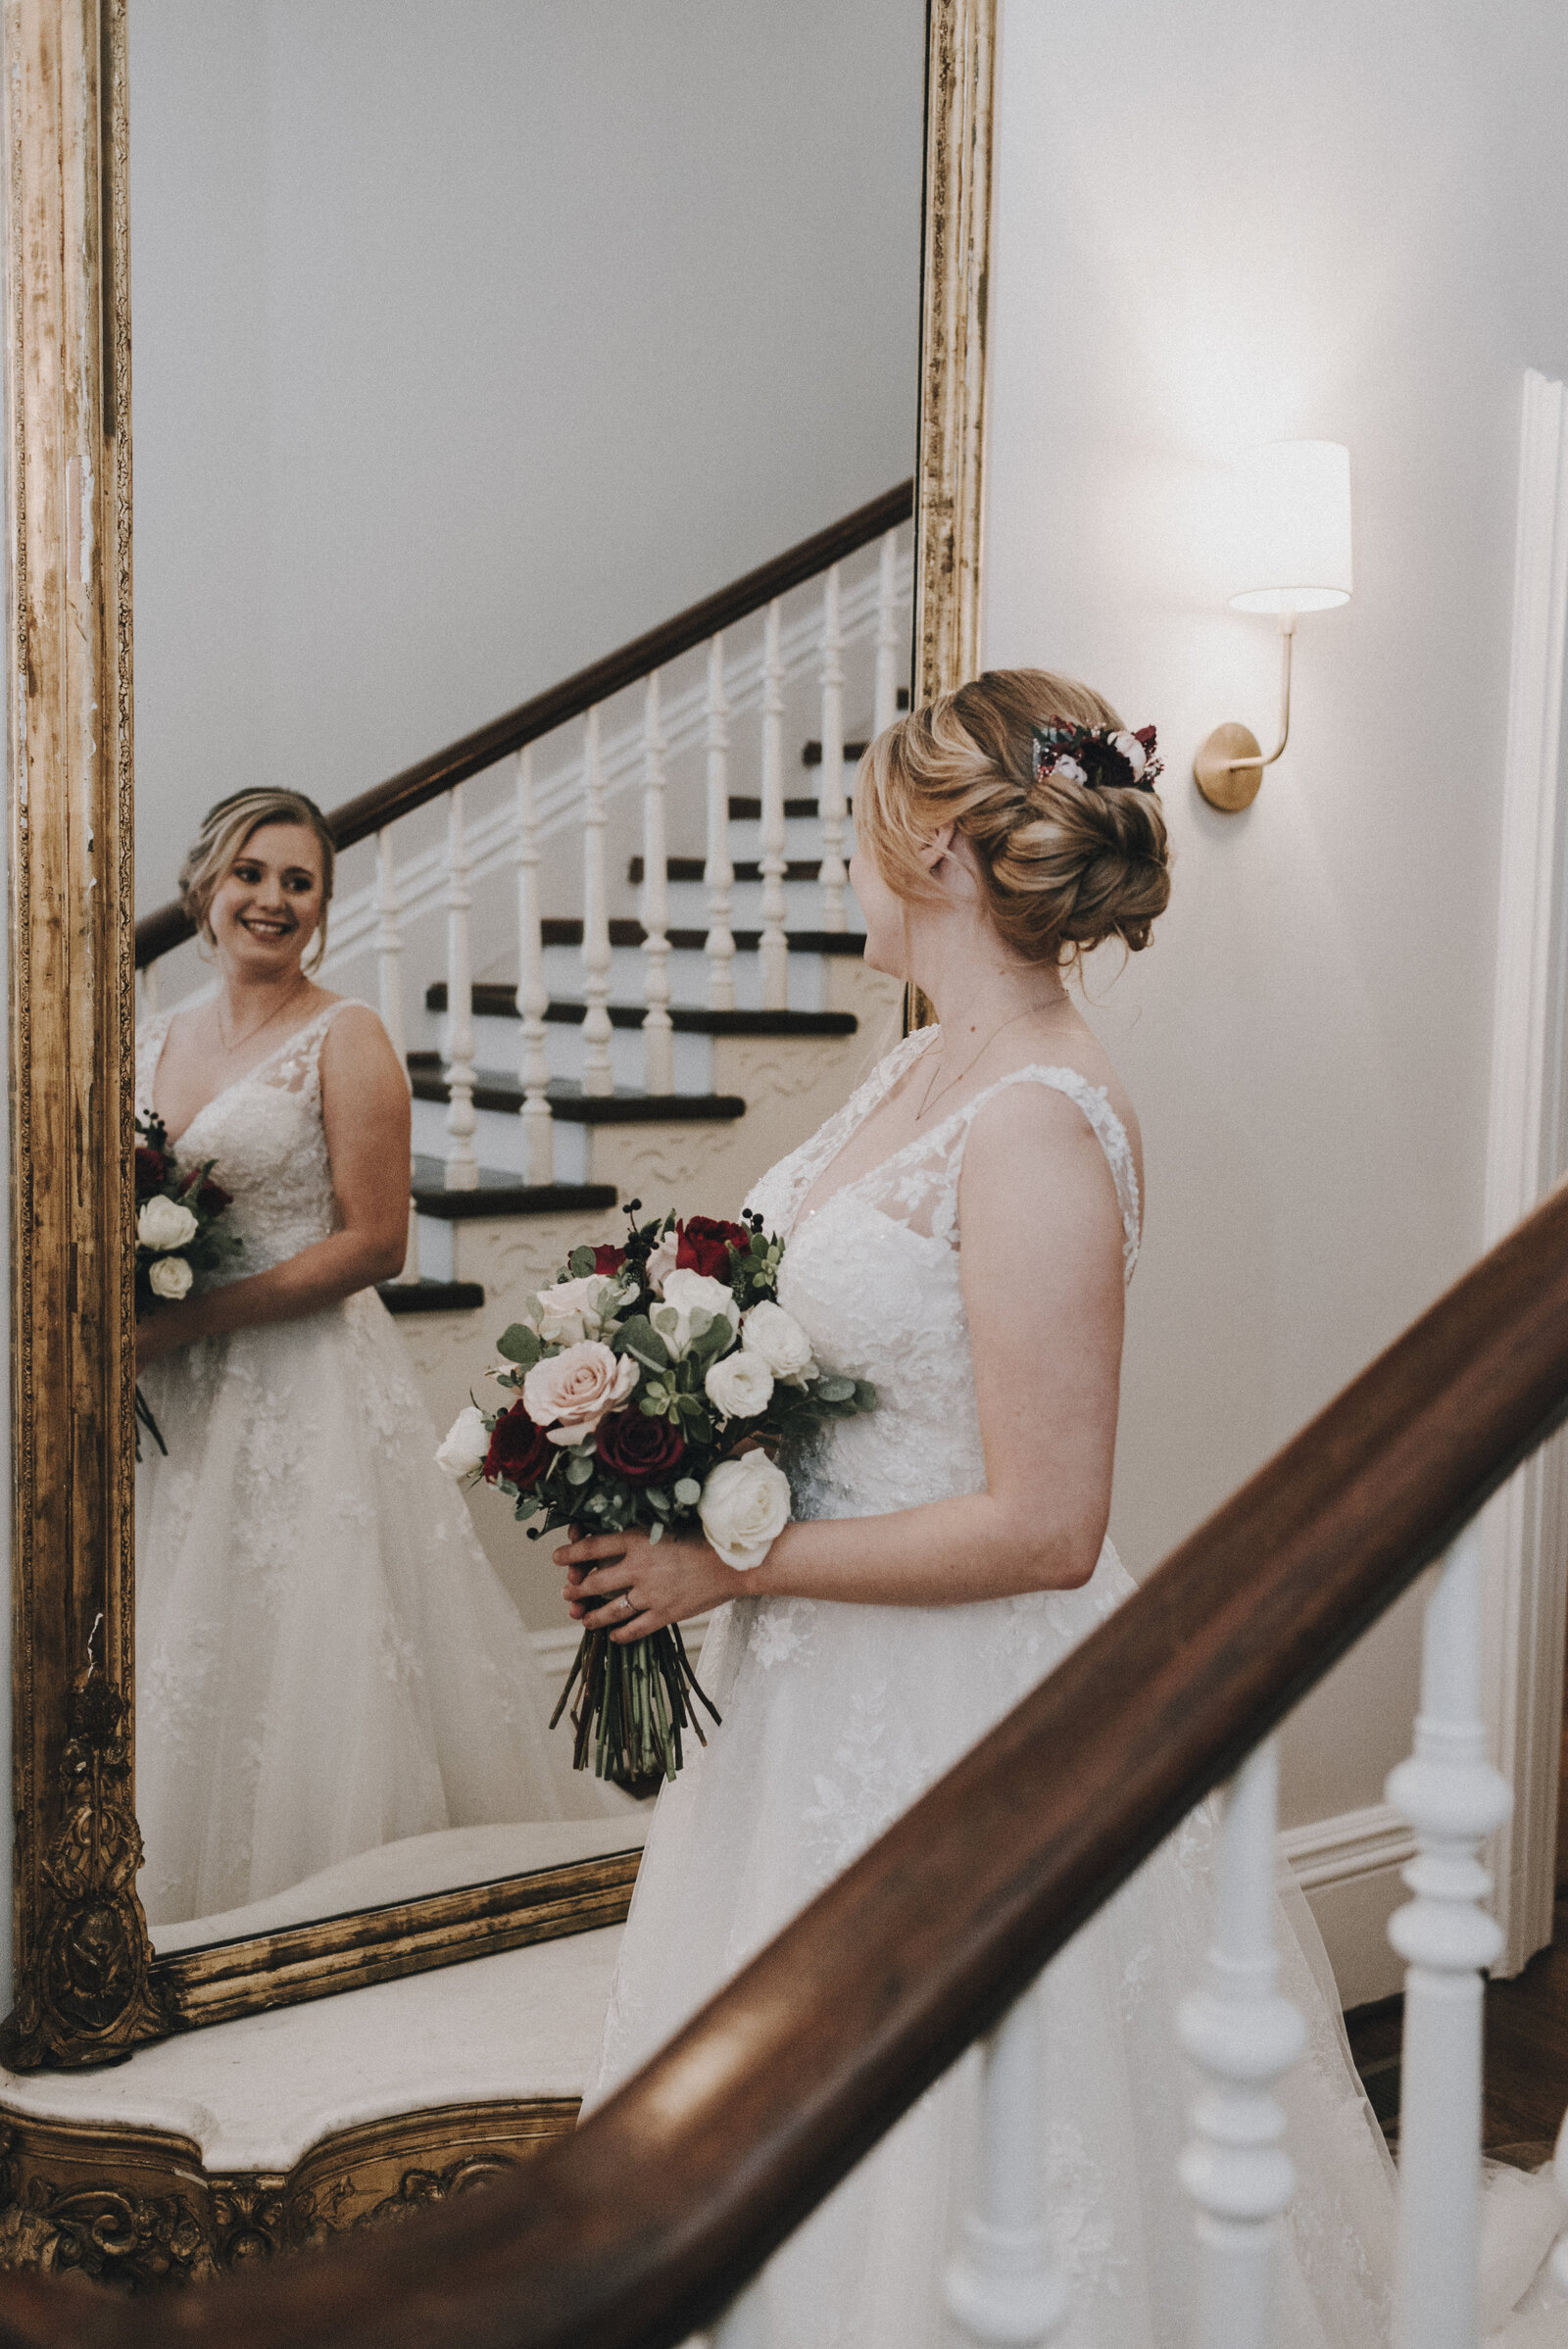 Bridal Portraits looking in mirror at McAllister Leftwitch House in Greensboro NC